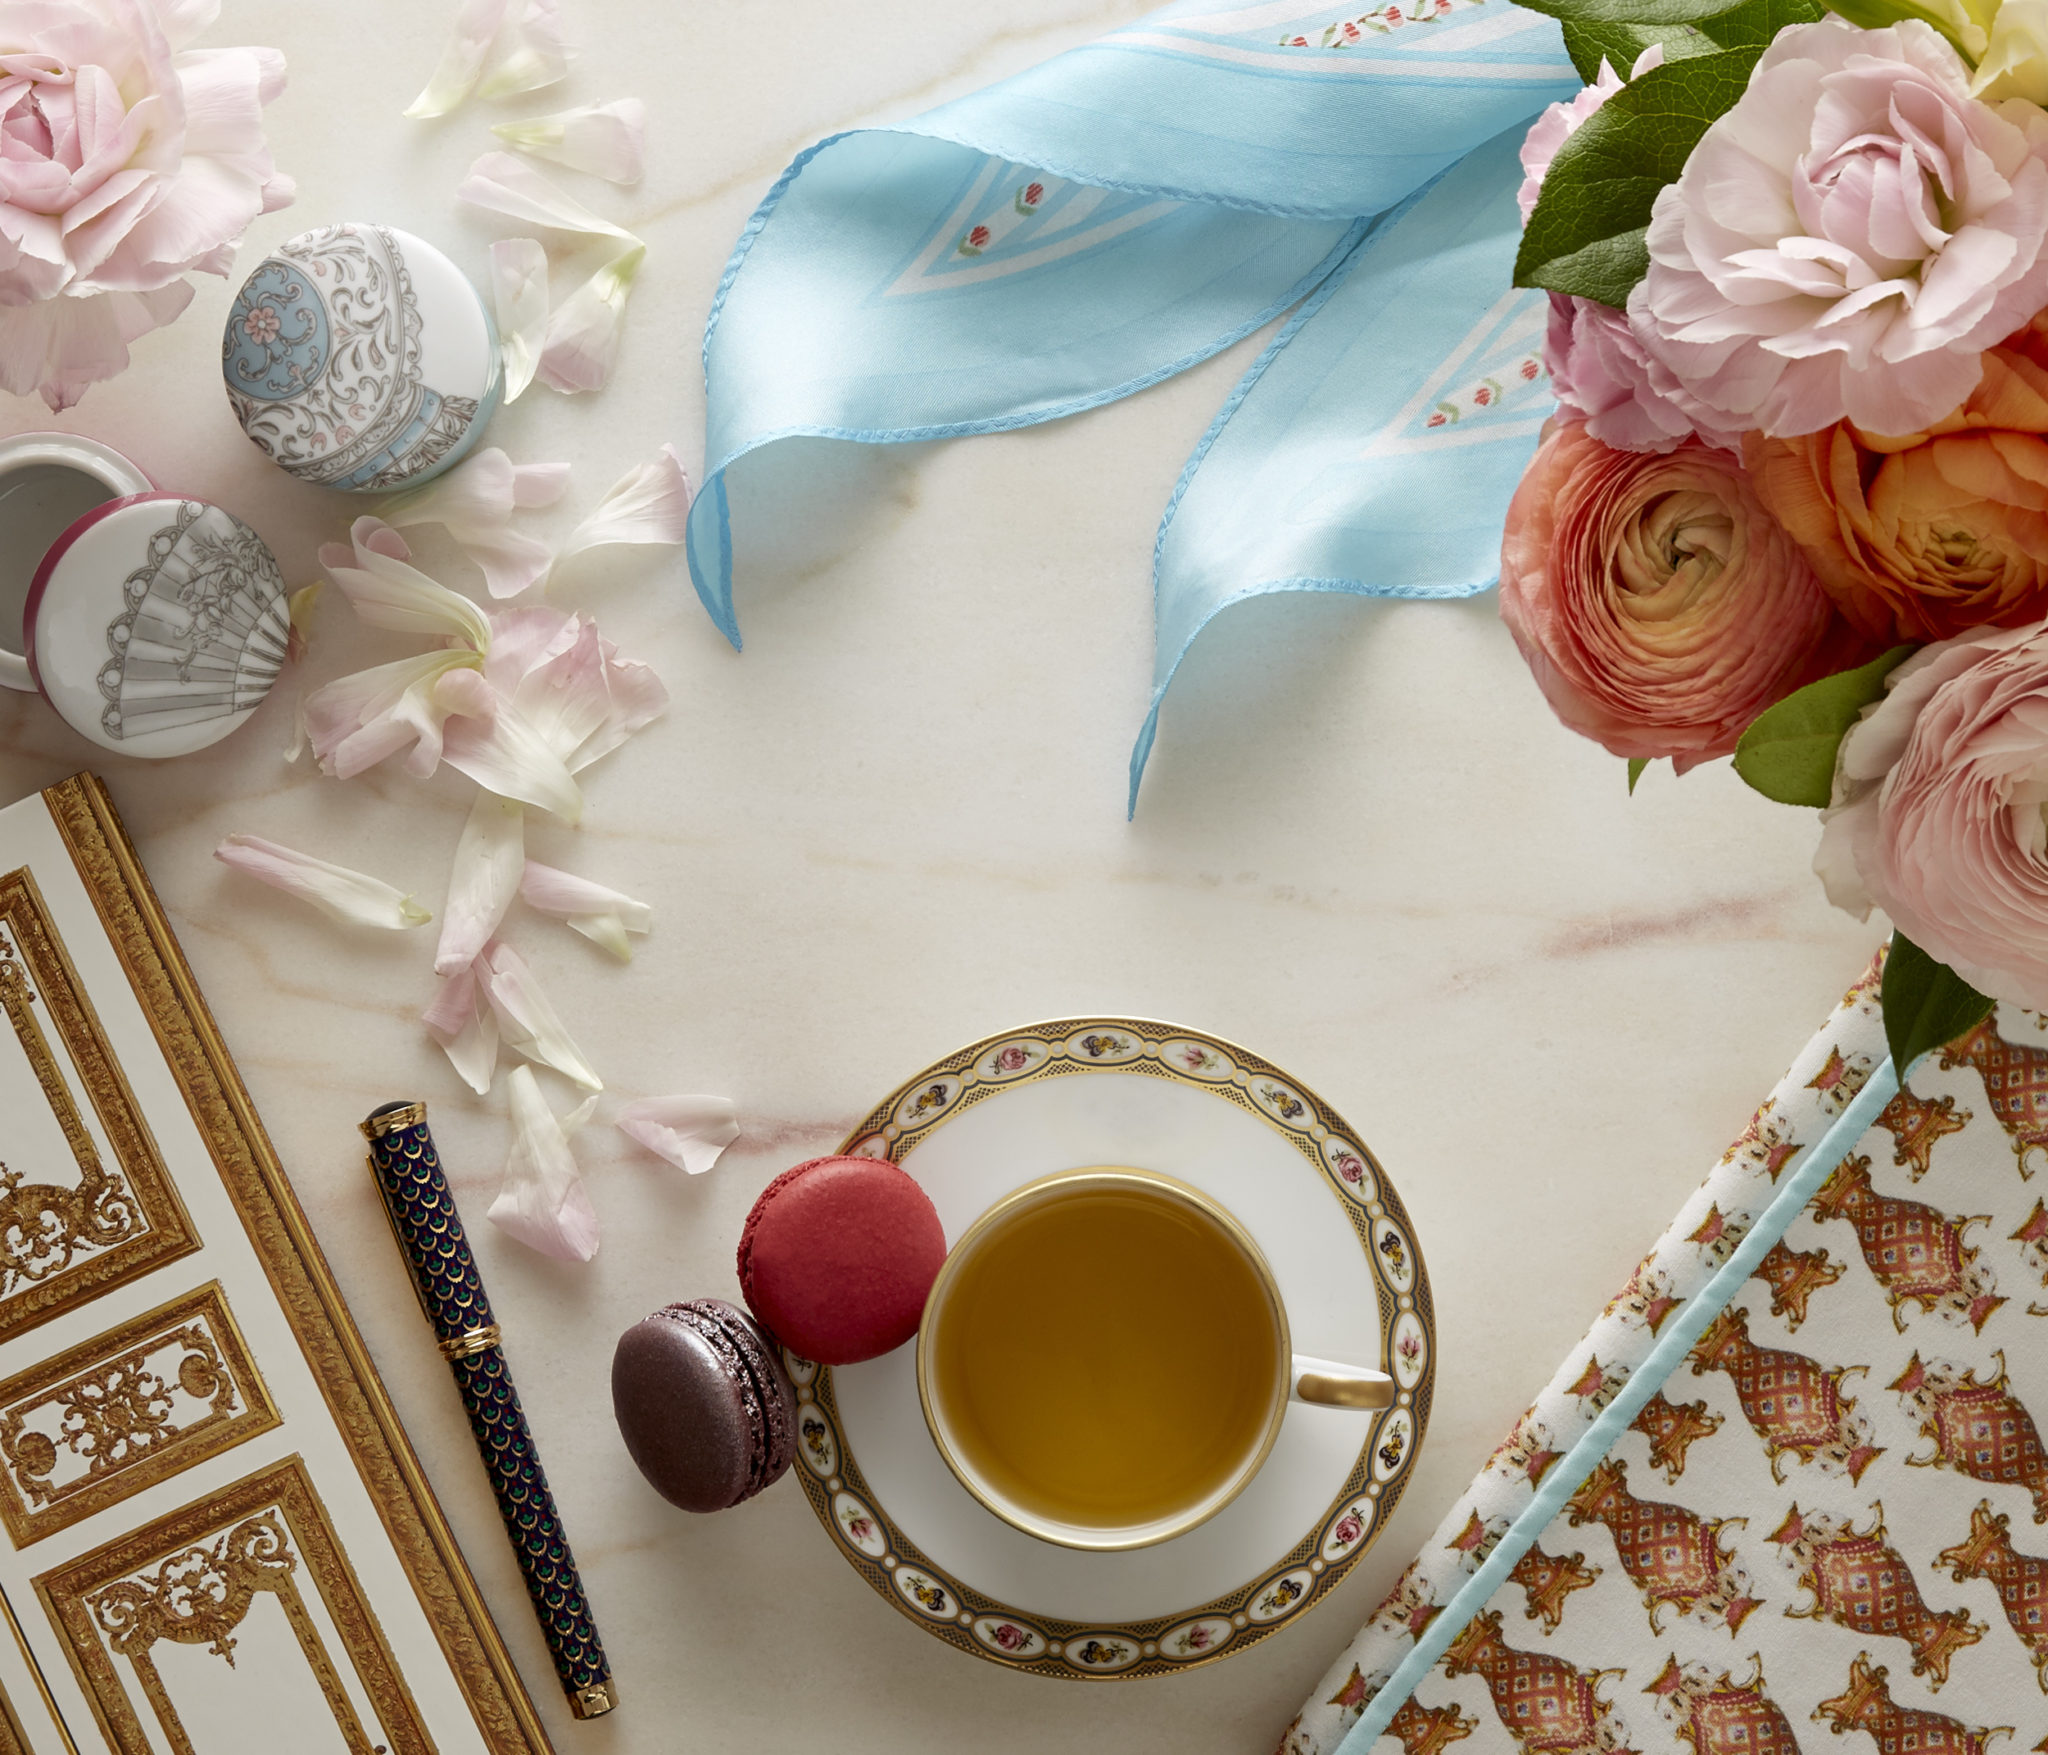 still life in warm window light of a journal and pen, a scarf, macrons, tea, a napkin, and flowers on marble